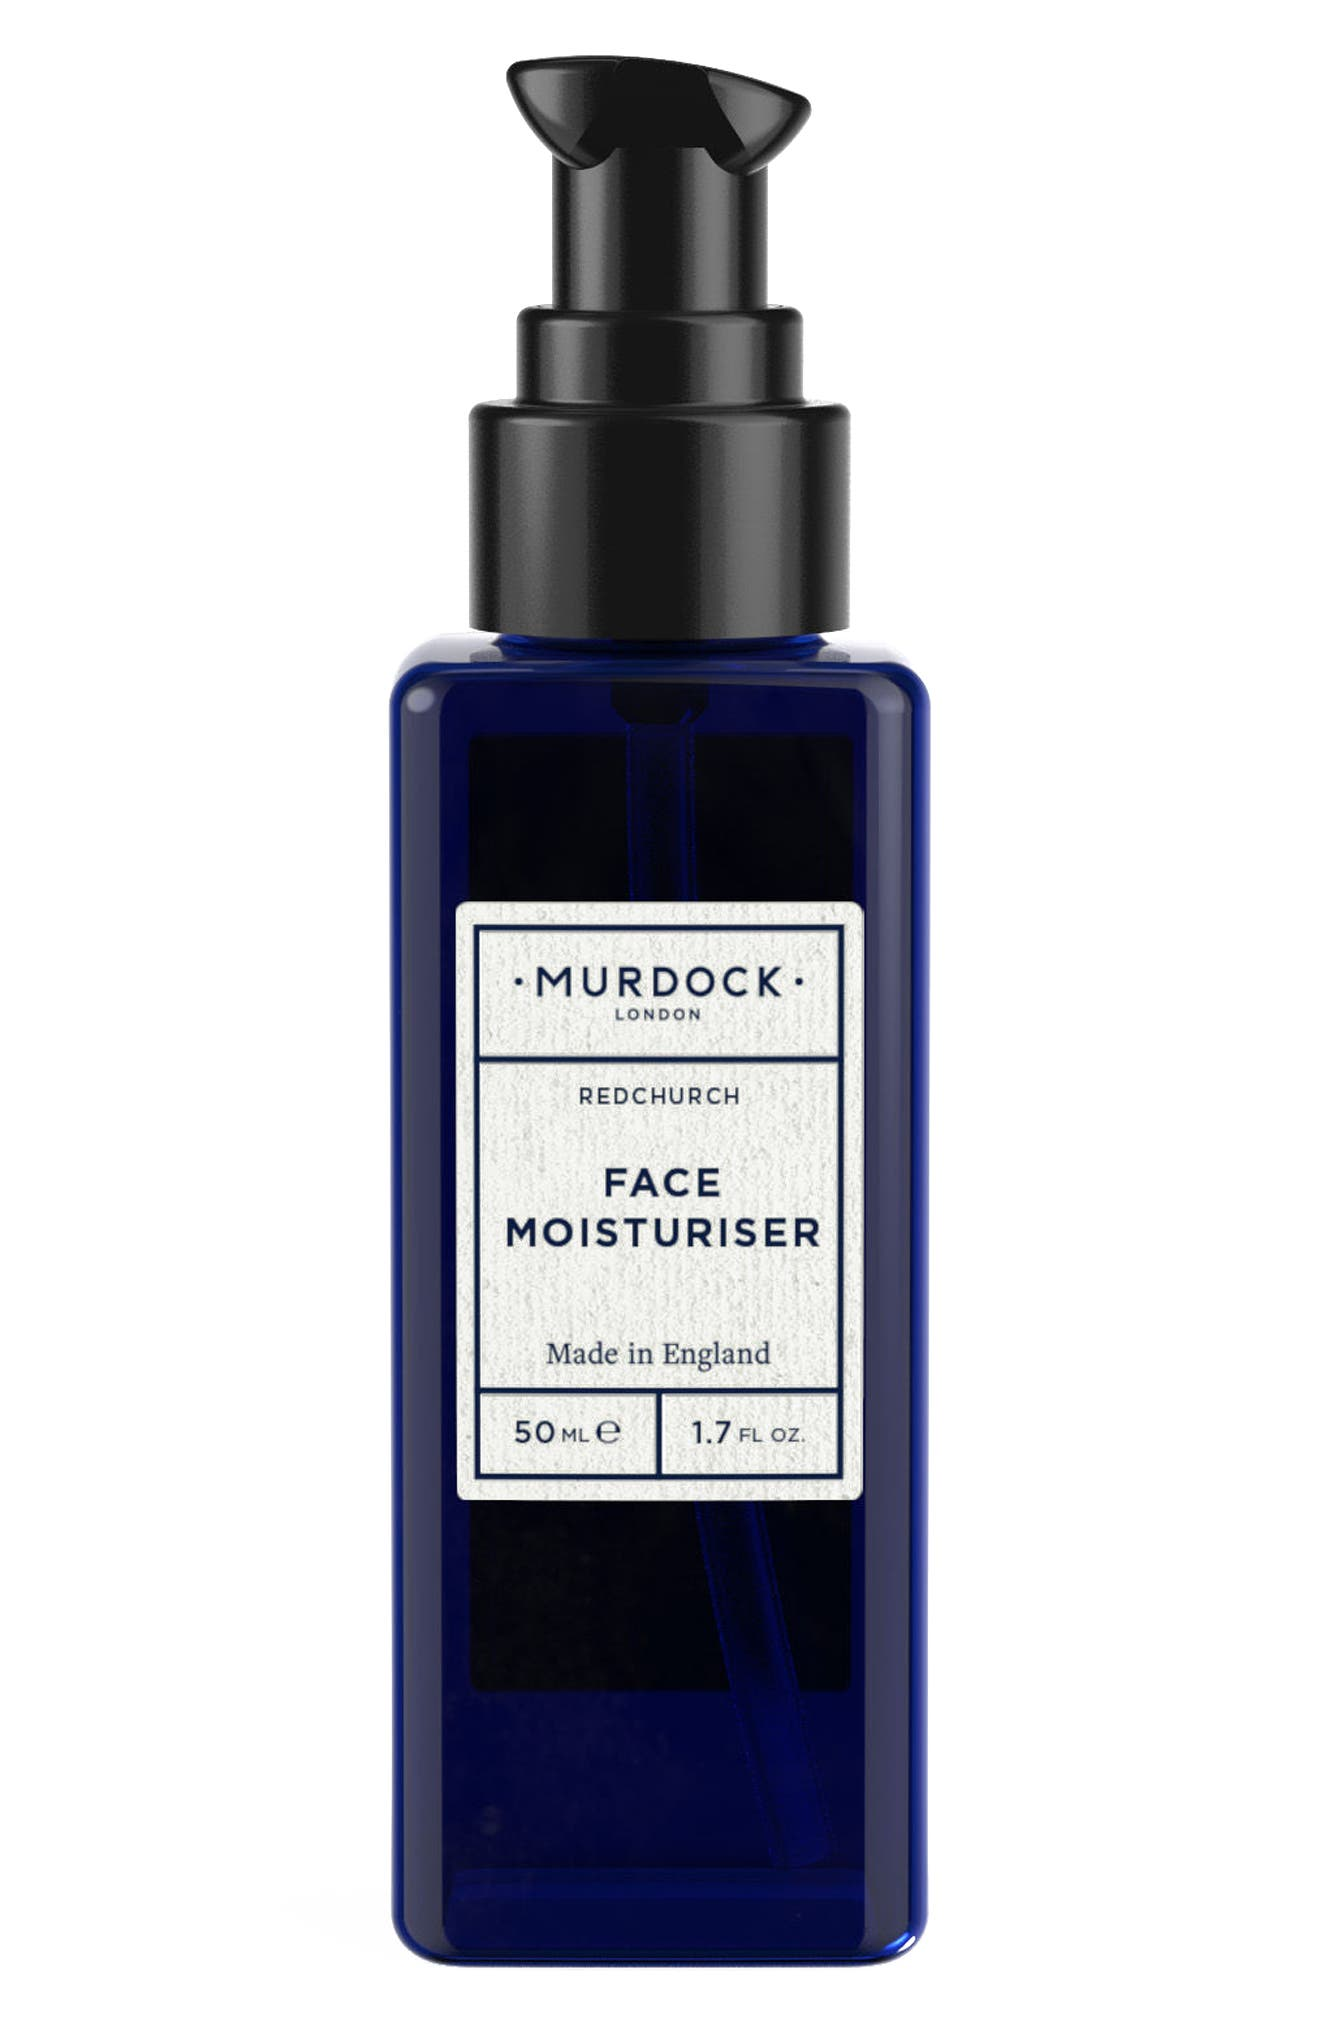 MURDOCK LONDON Home Accessories 50Ml Face Moisturiser in Z